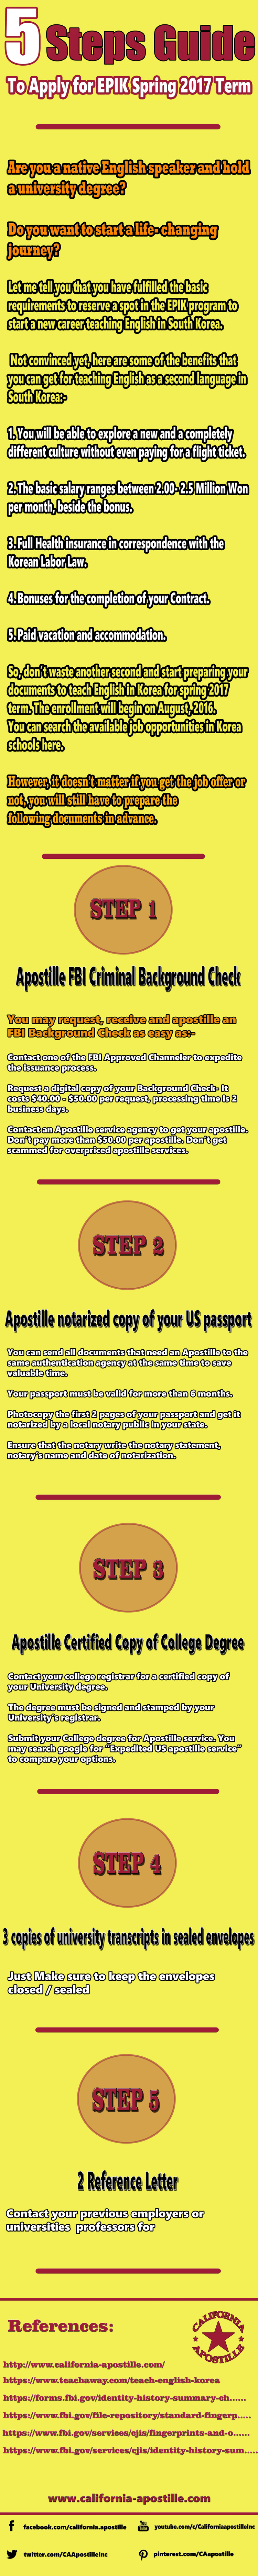 5 Steps Guide To Apply For Epik Spring 2017 Term Infographic California Apostille How To Apply Infographic Step Guide